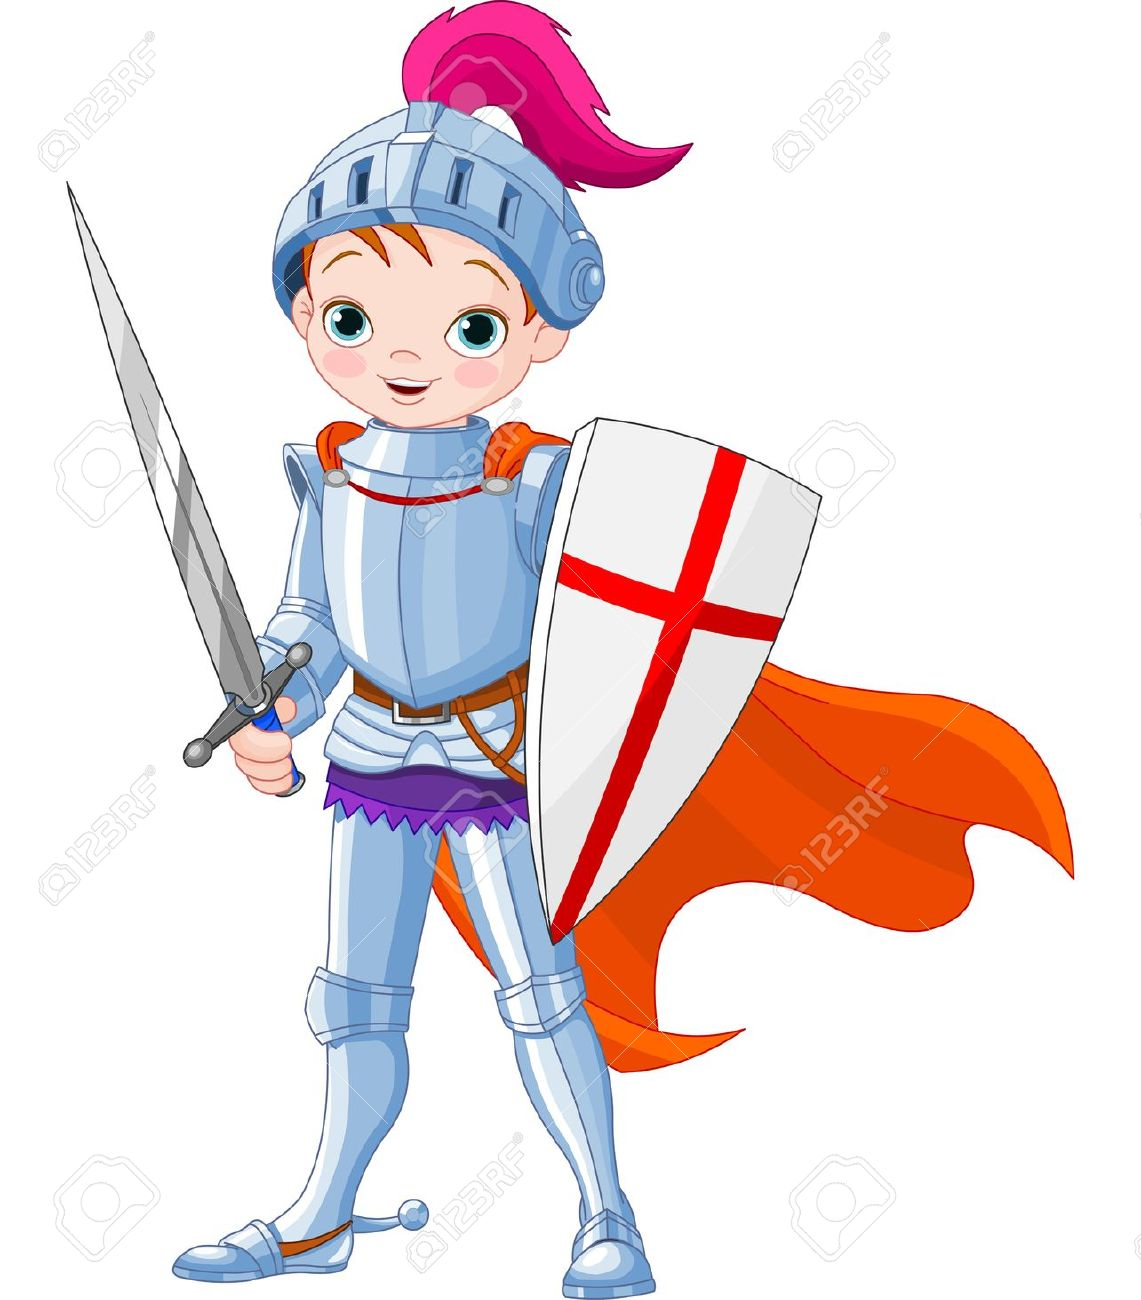 Knight clipart #14, Download drawings